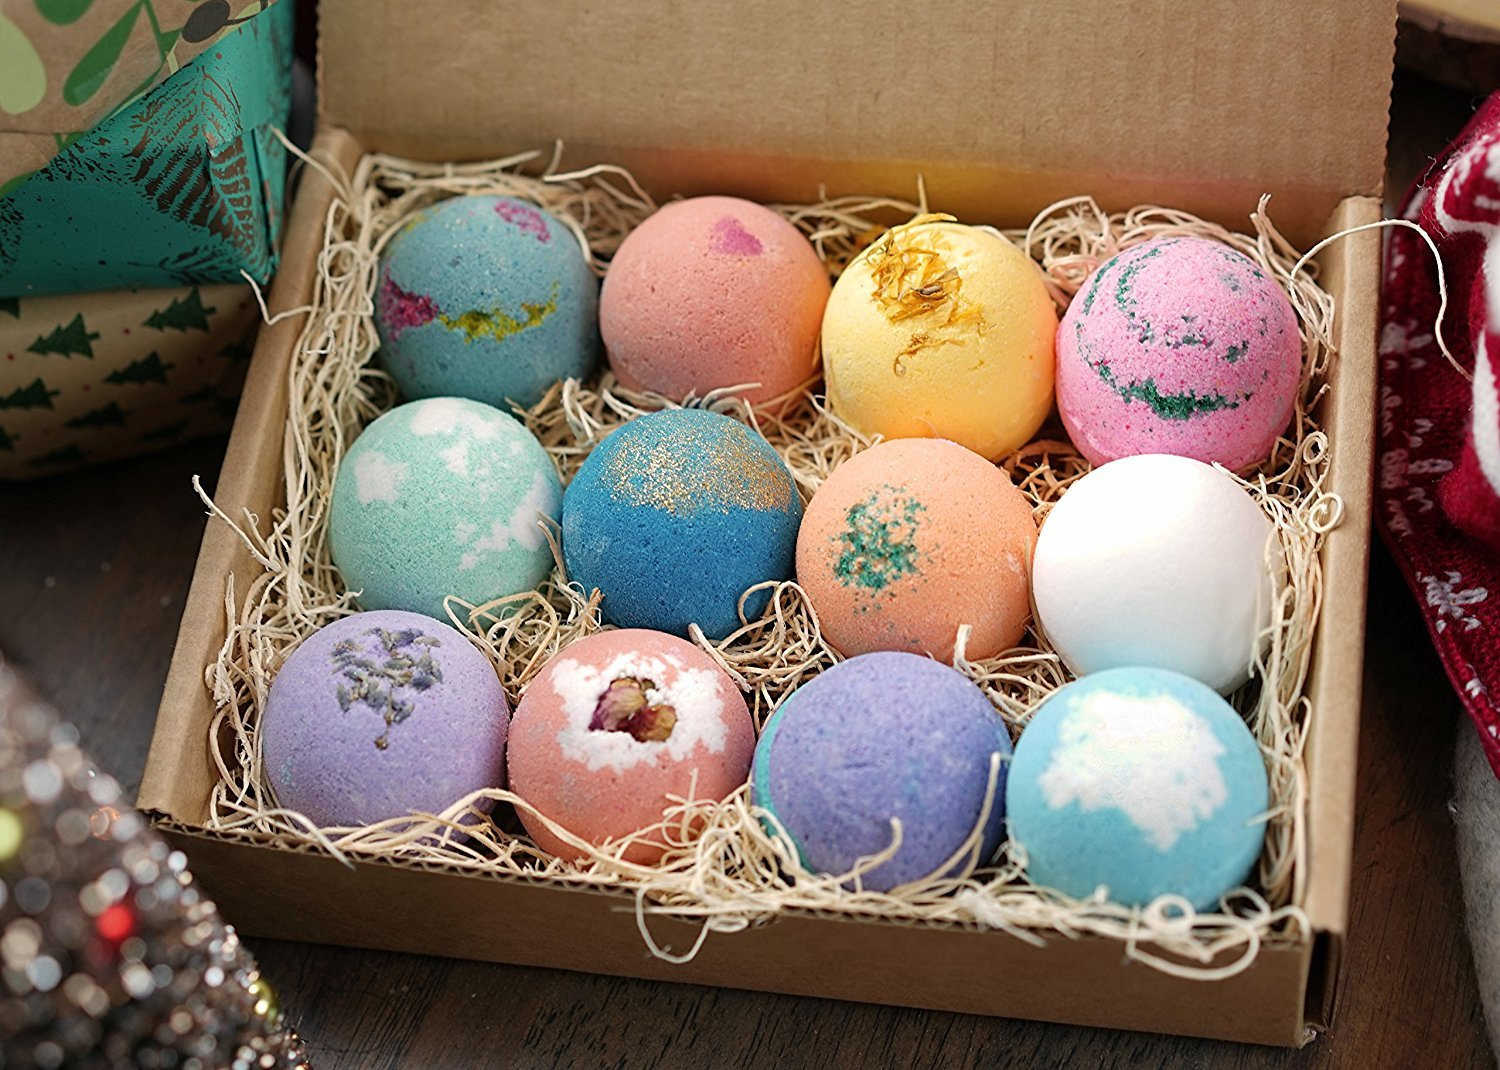 LifeAround2Angels Bath Bombs Gift Set 12 USA made Fizzies, Shea & Coco Butter Dry Skin Moisturize, Perfect for Bubble & Spa Bath. Handmade Birthday Mothers day Gifts idea For Her/Him, wife, girlfriend by LifeAround2Angels (Image #9)